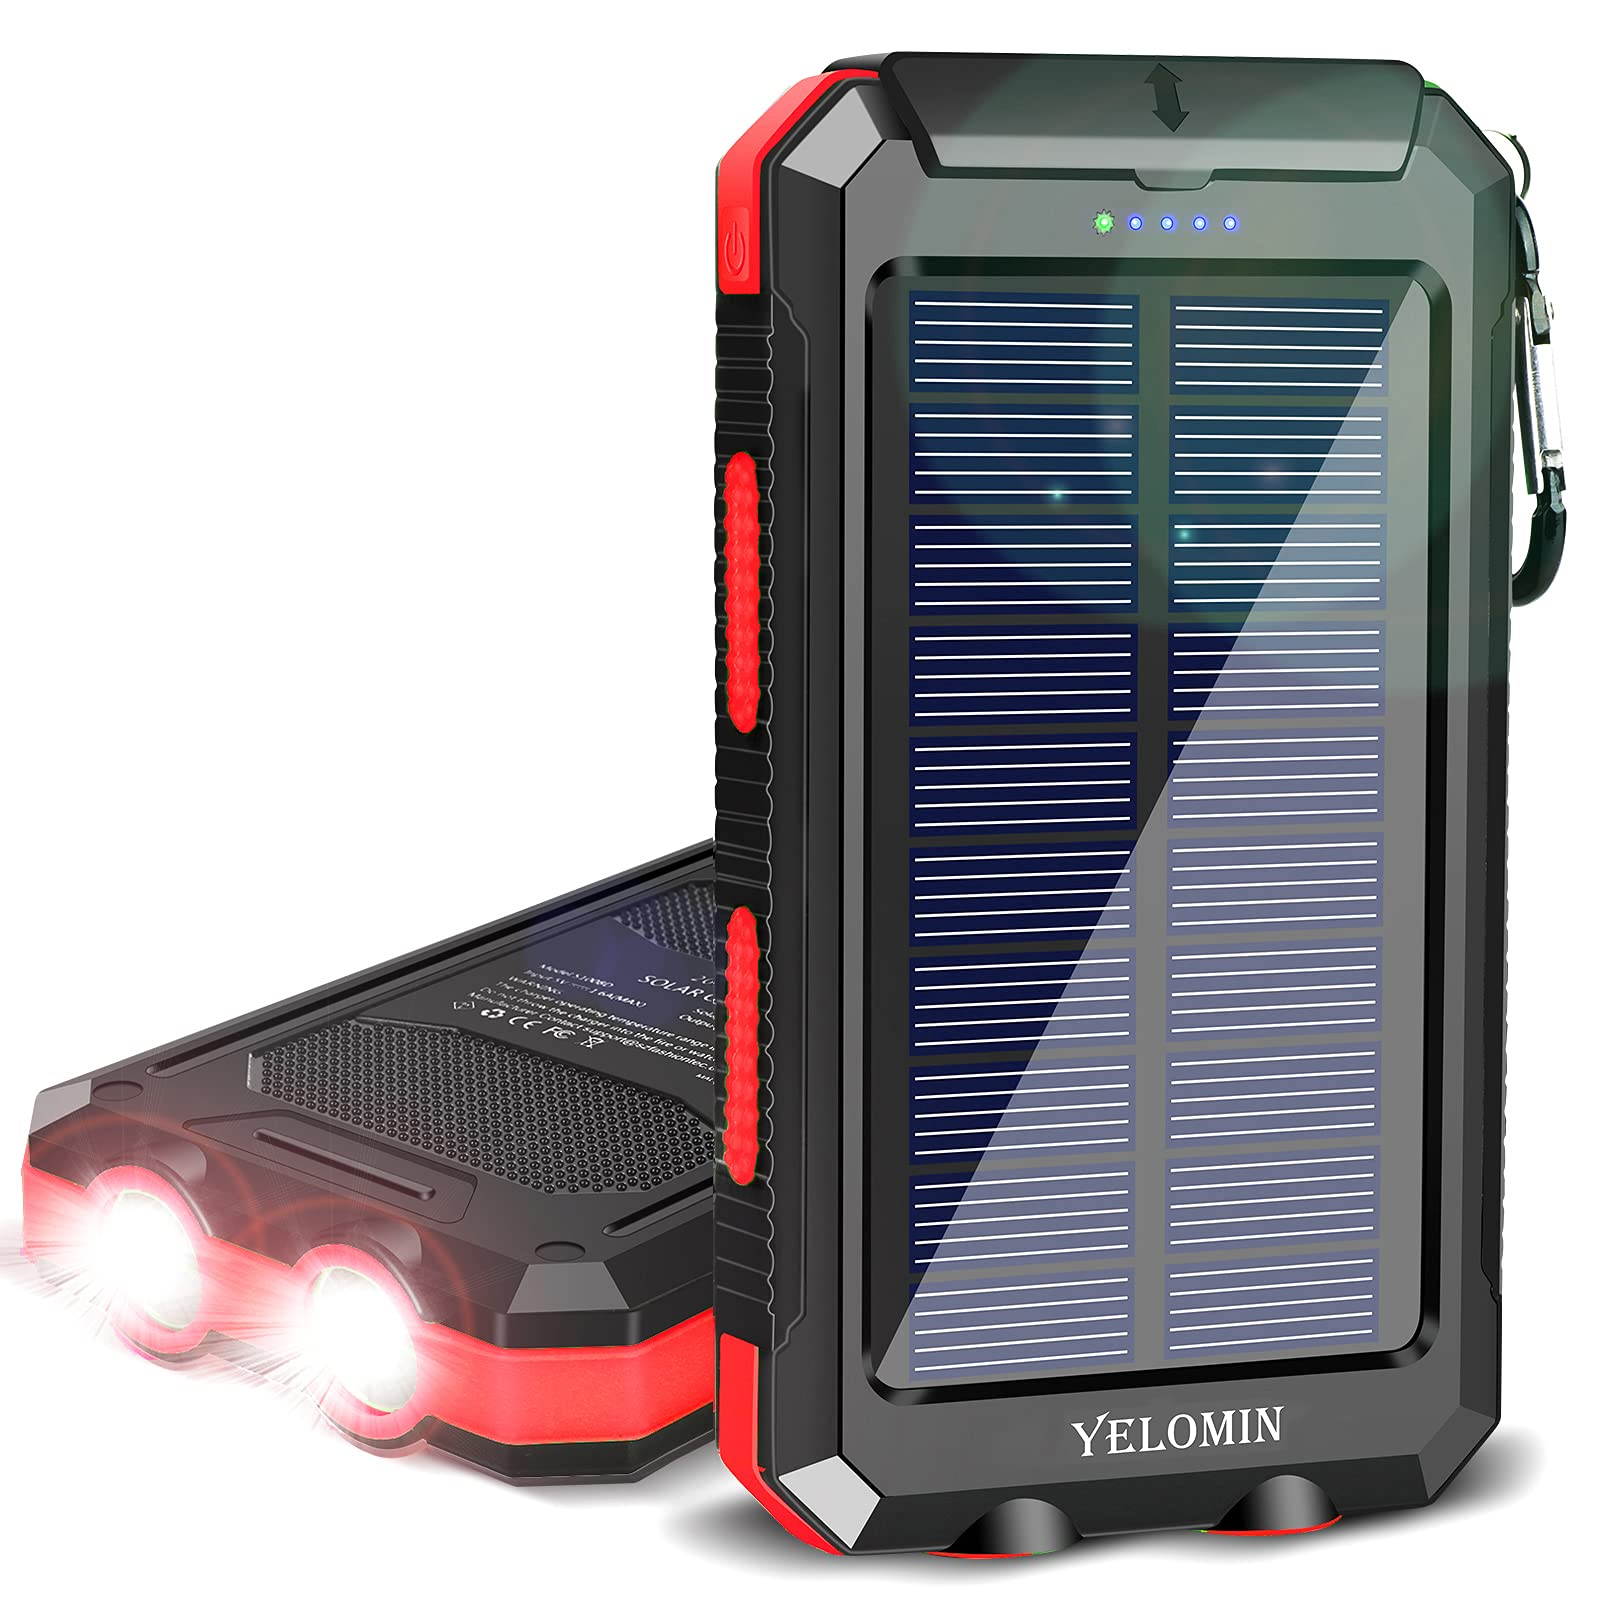 Solar Charger,YELOMIN 20000mAh Portable Waterproof Solar Power Bank for Cellphones External Backup Battery Pack Built-in Dual USB Outputs/LED Flashlights,Compatible with Tablets and Other Devices(Red)